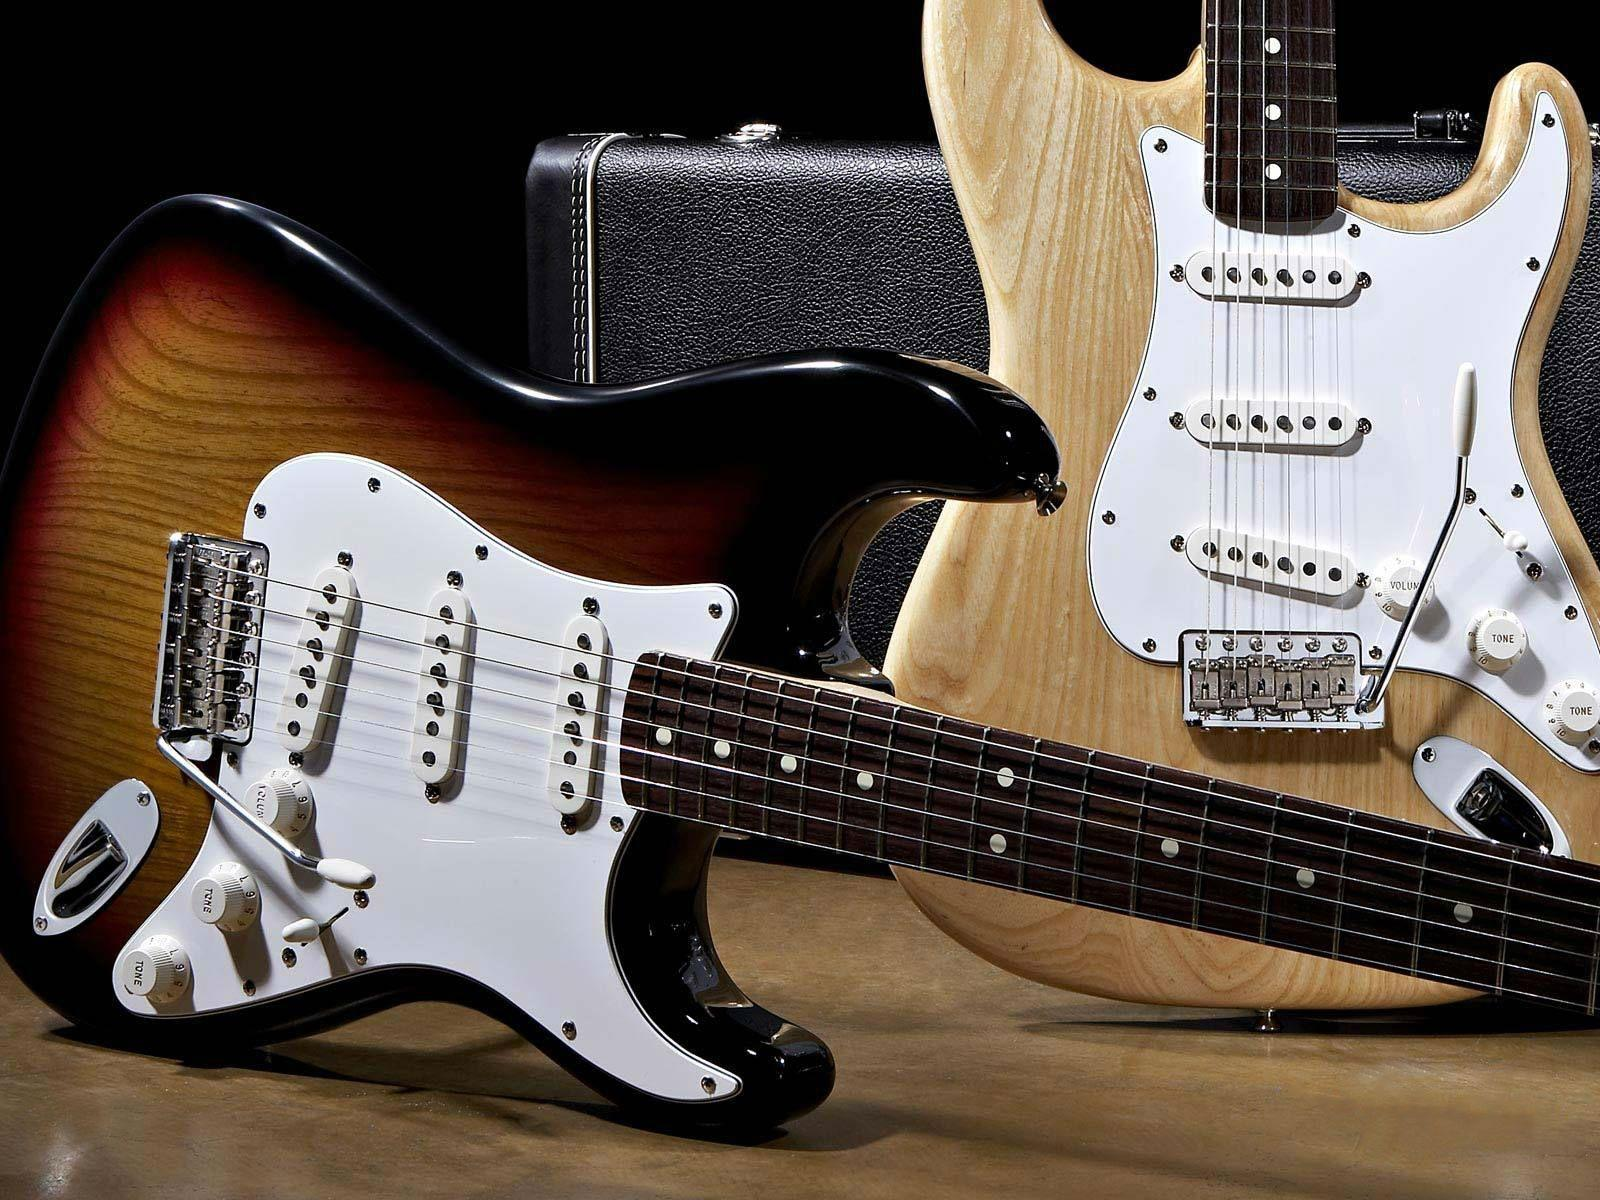 Fender Stratocaster Wallpapers 1600x1200